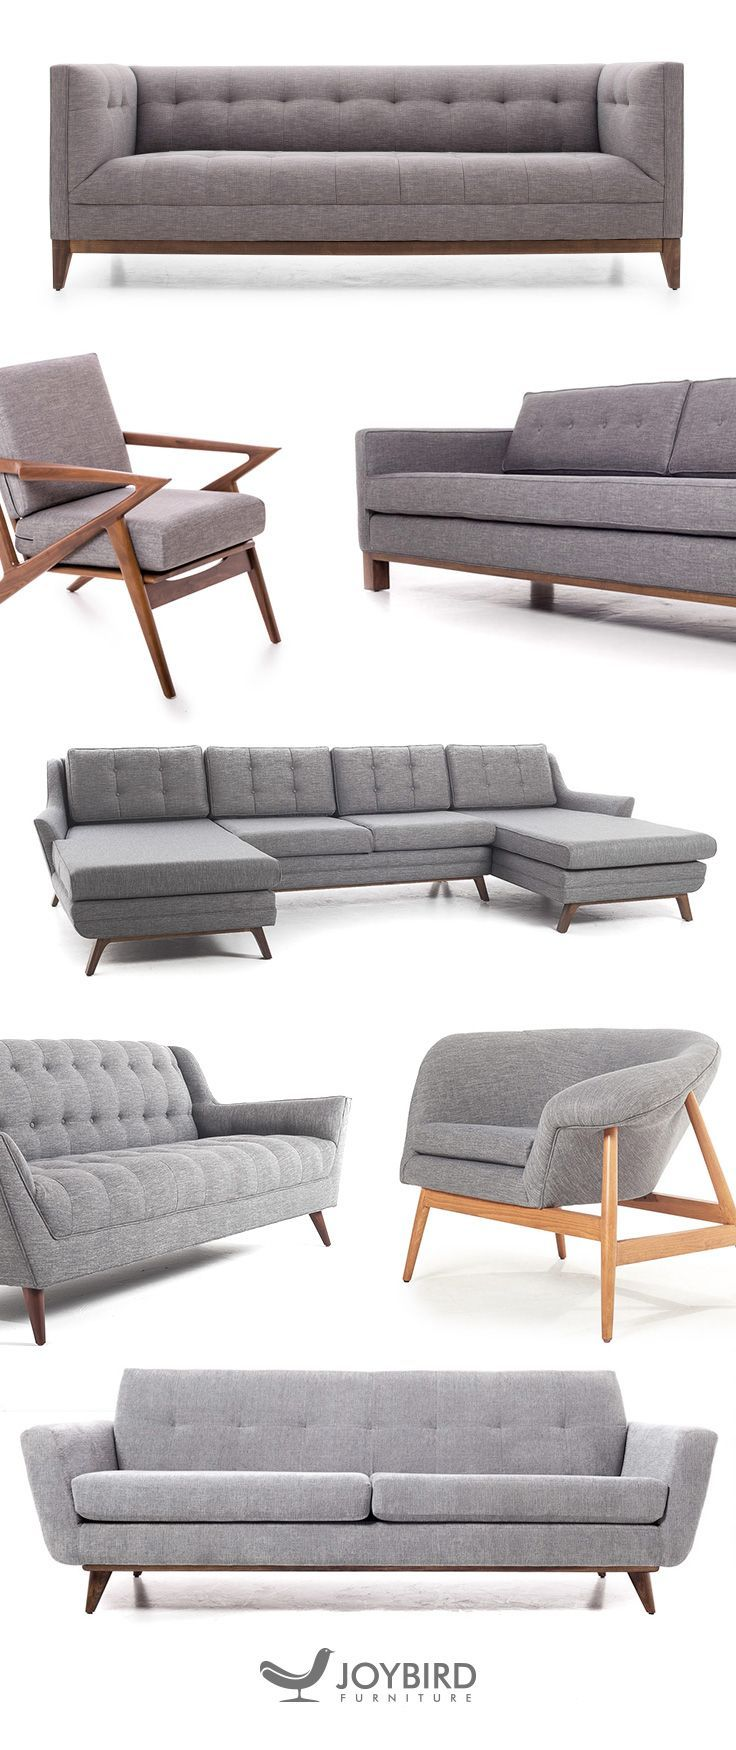 Get premium quality furniture made just for you with Quality modern couches